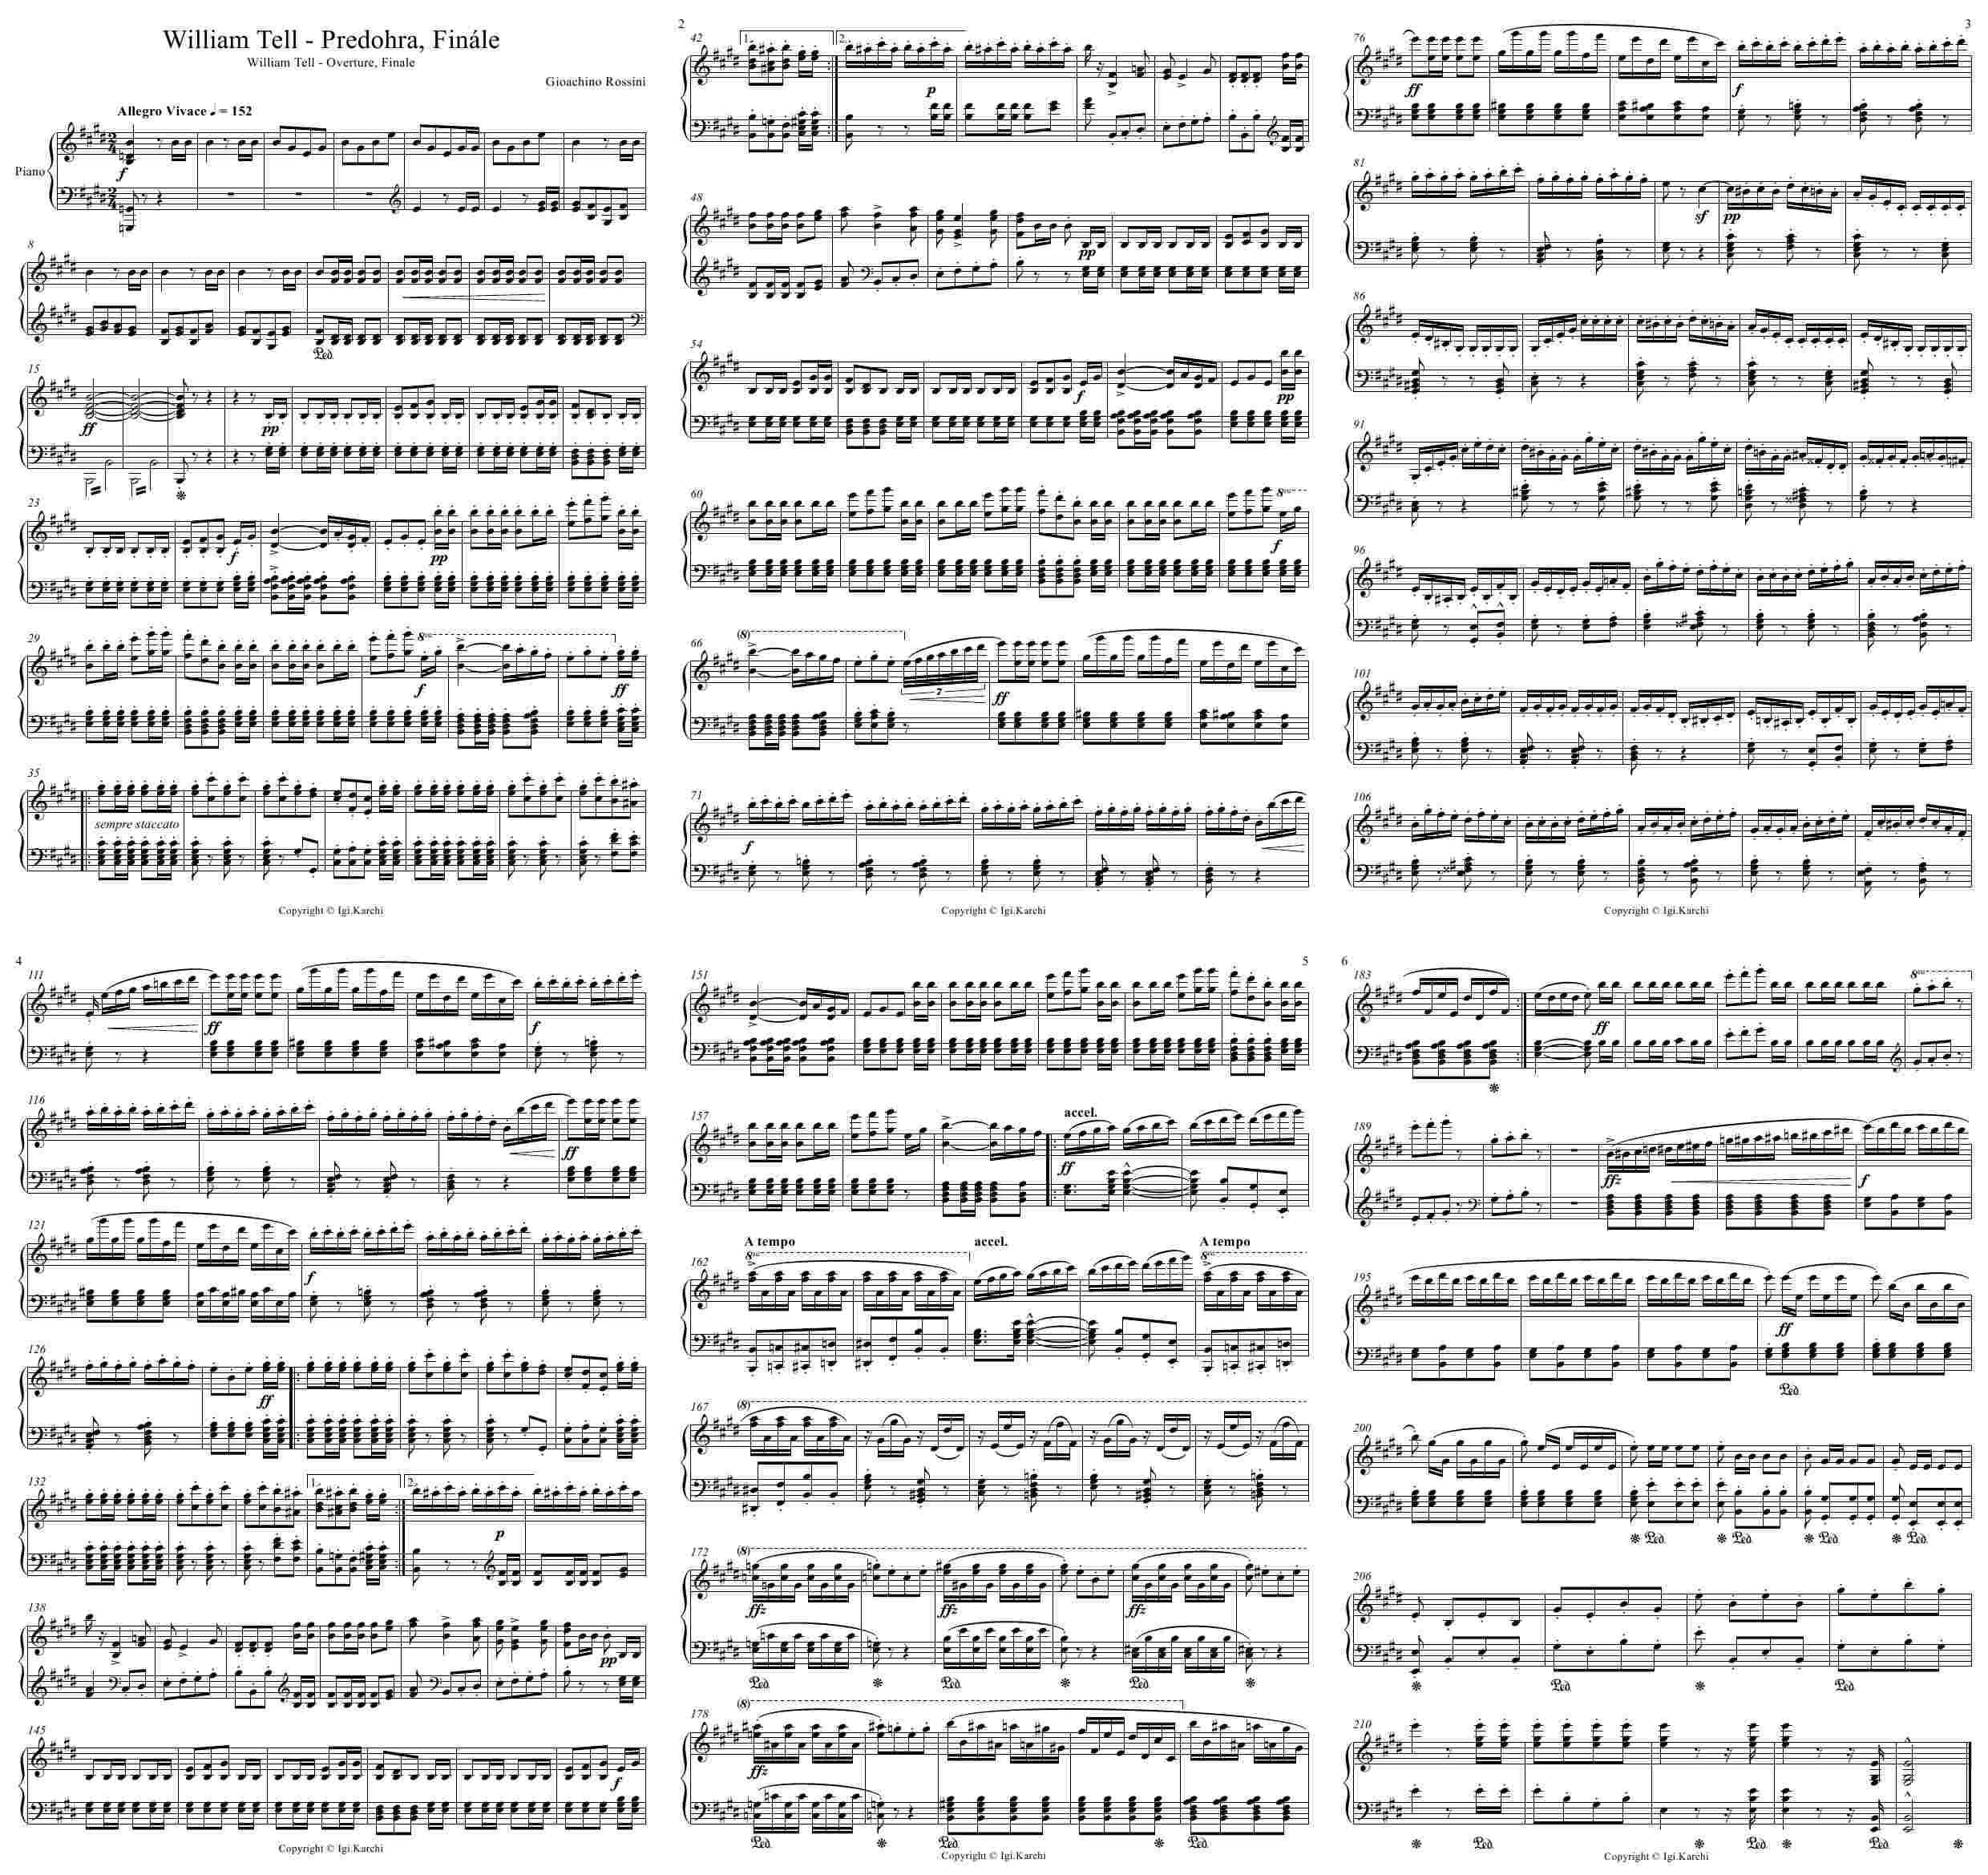 Nothing Else Matters Piano Sheet Music Free Download: William Tell Predohra, William Tell Overture Finale, Opera